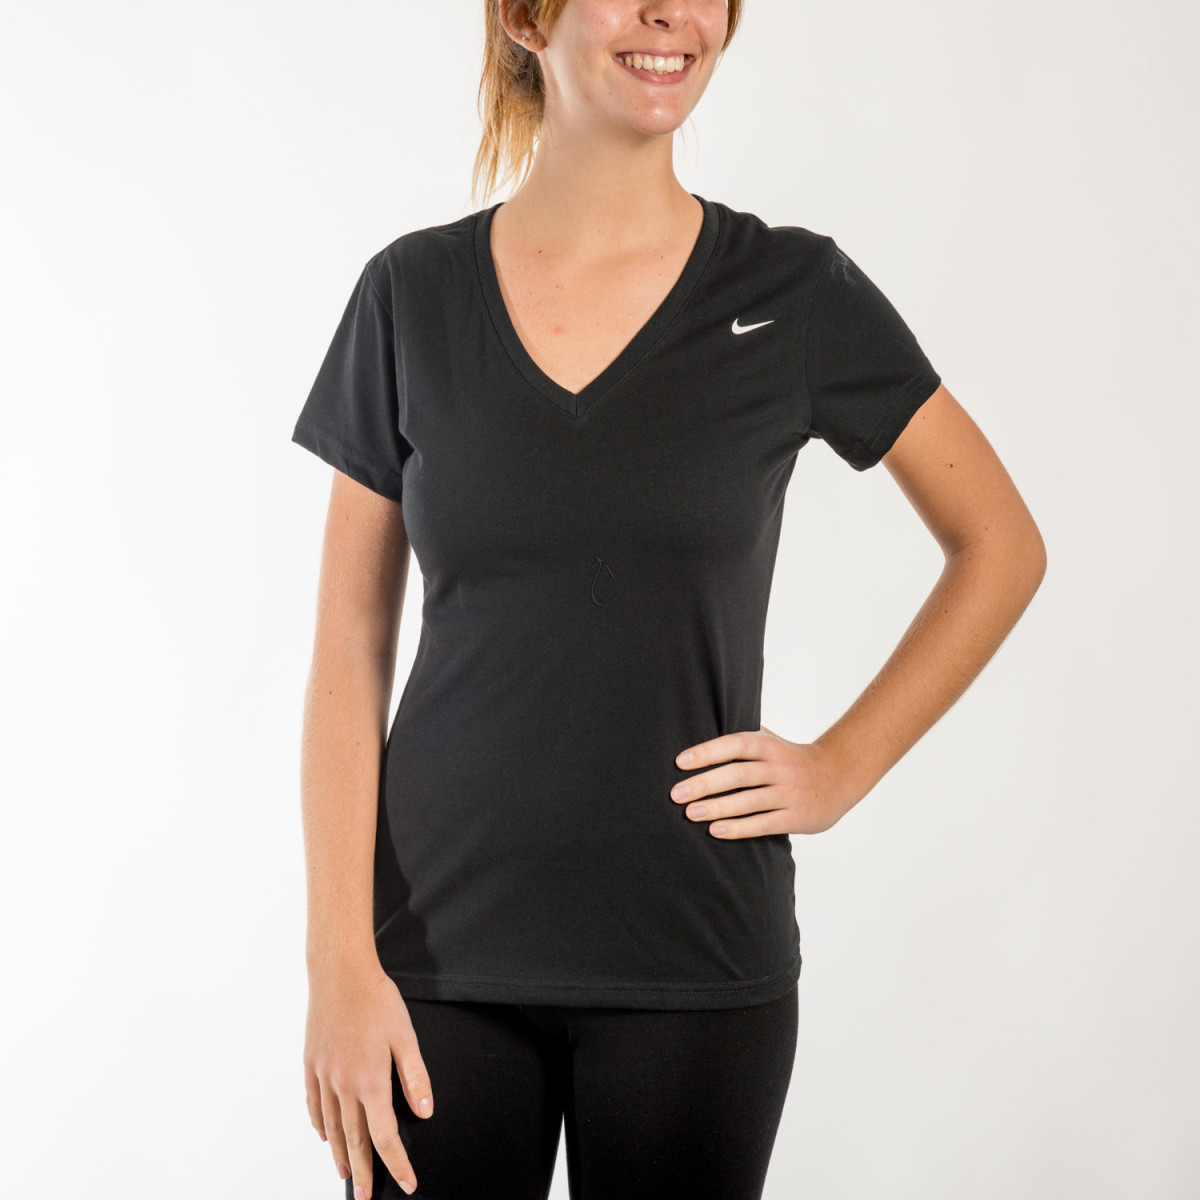 REMERA NIKE DRI FIT COTTON VNECK TEE.